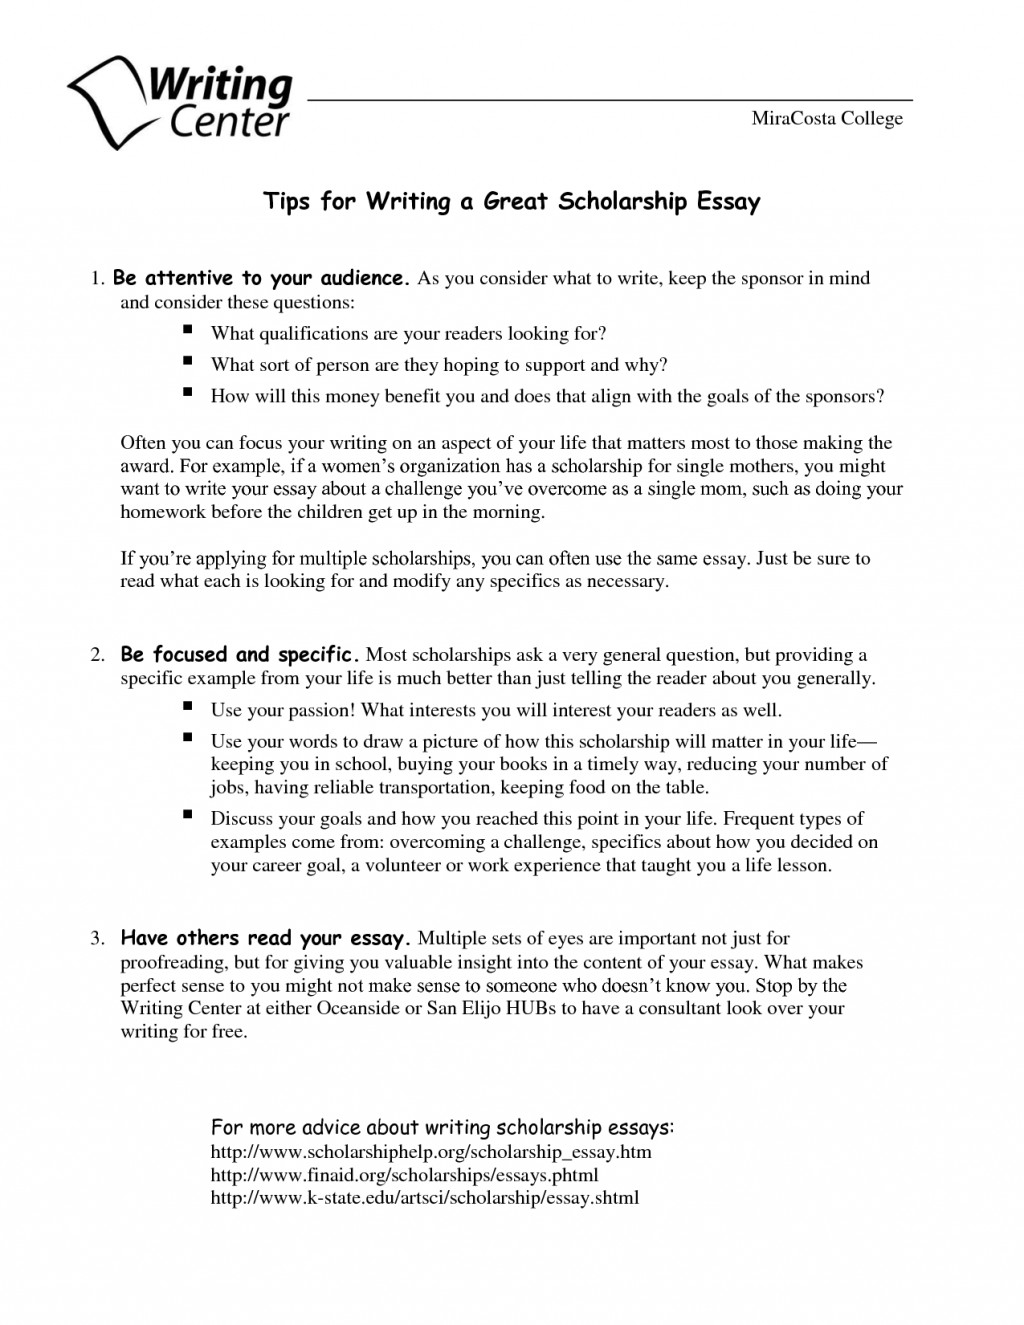 018 Scholarships With Essays N8cudozdpd Essay Singular Without Writing For High School Juniors Class Of 2020 No 2019 Large